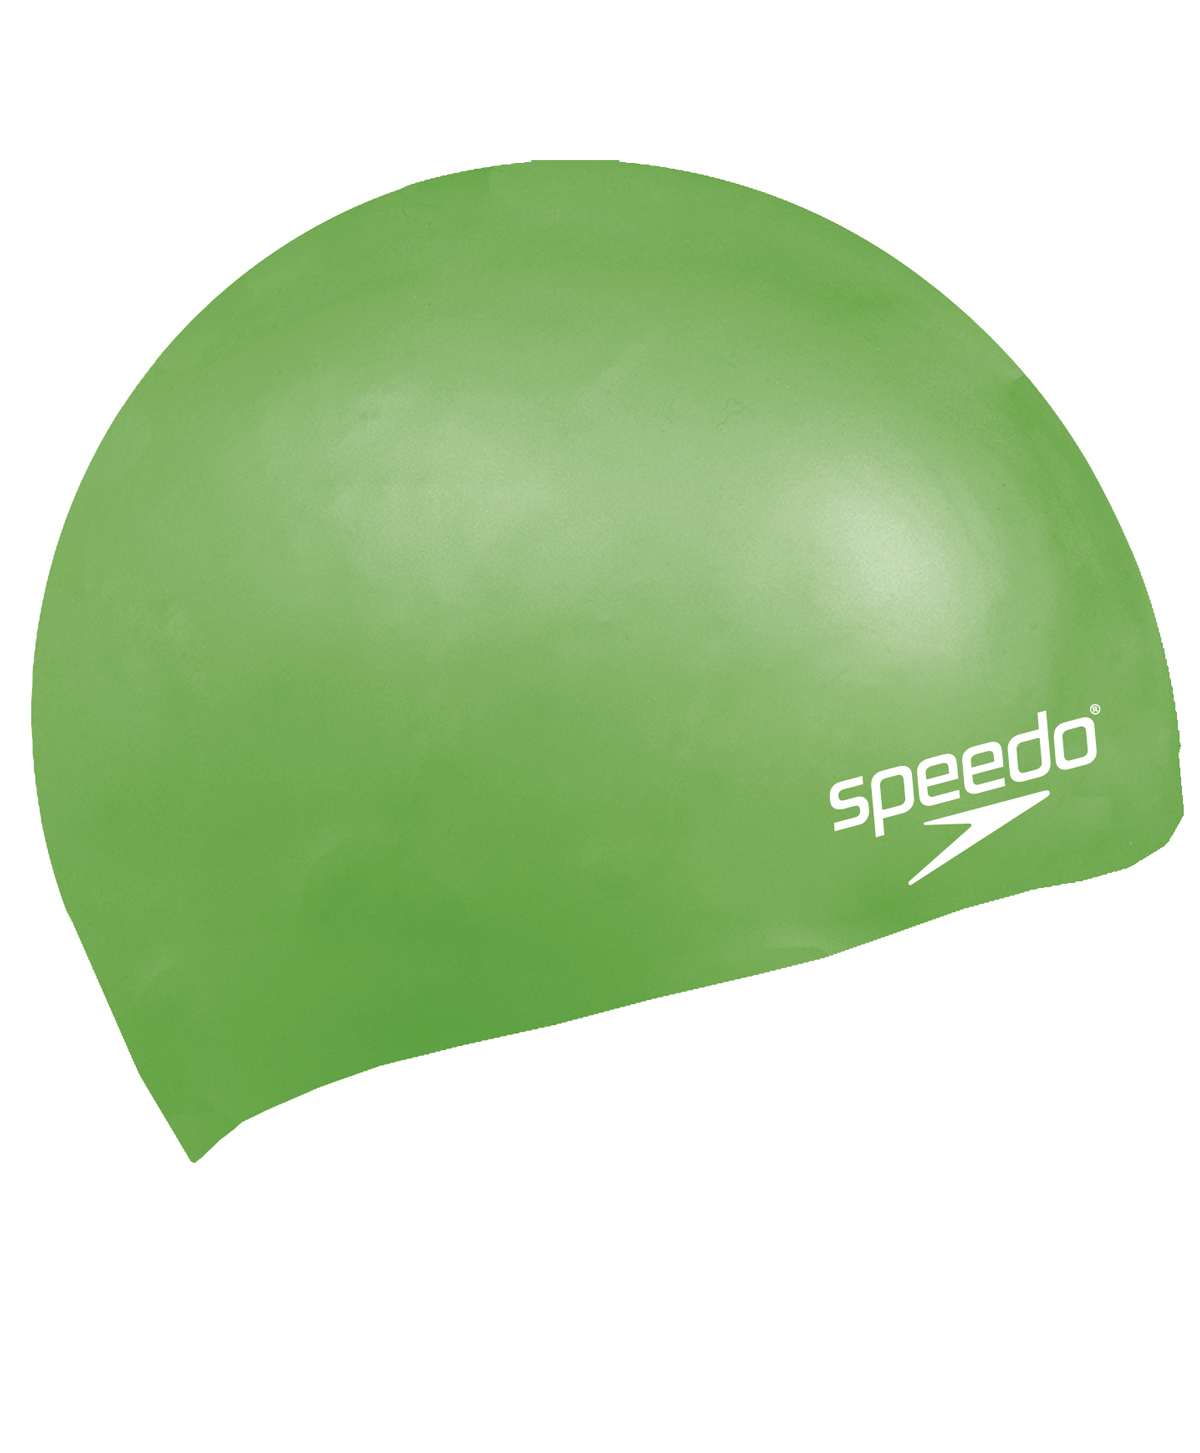 Speedo Junior Plain Moulded Silicone Swim Cap - Green